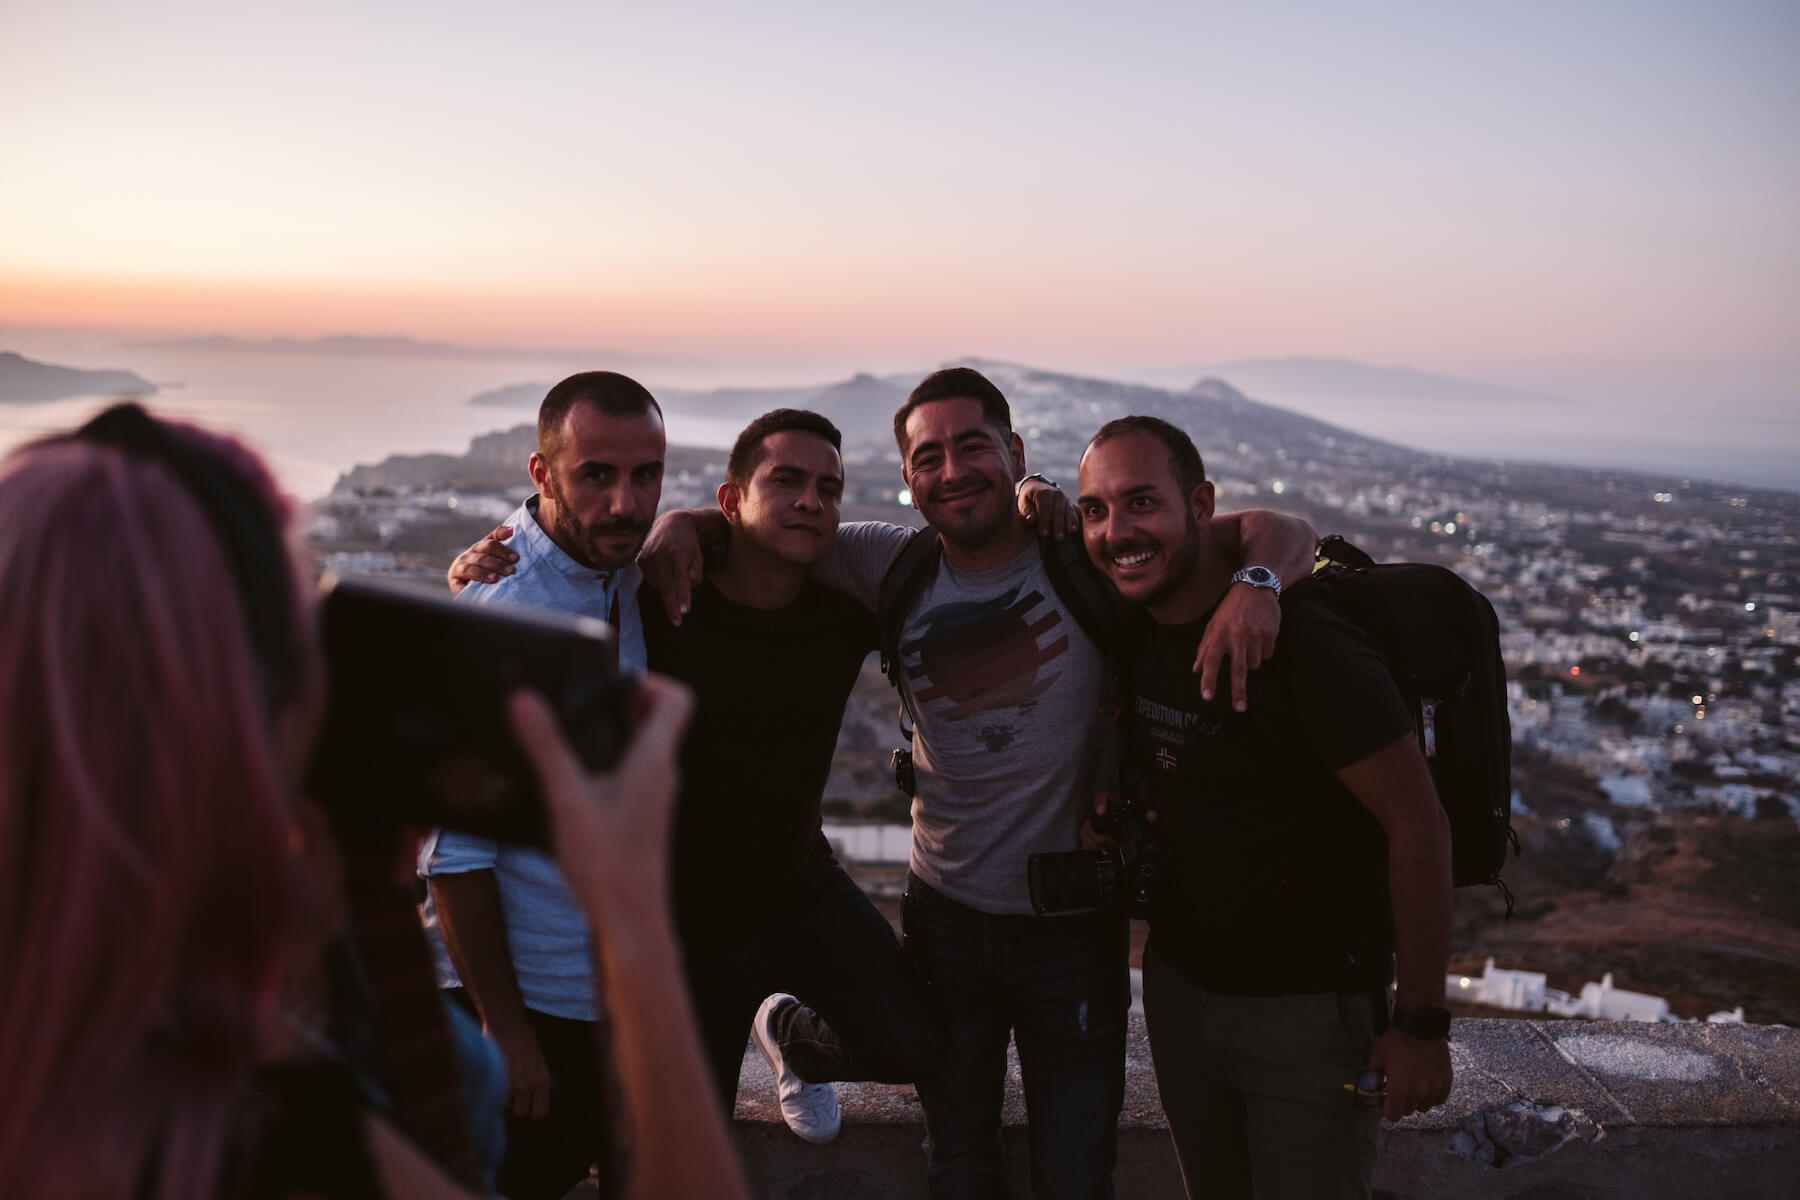 Group of men posing for a photo in front of the view in Santorini, Greece